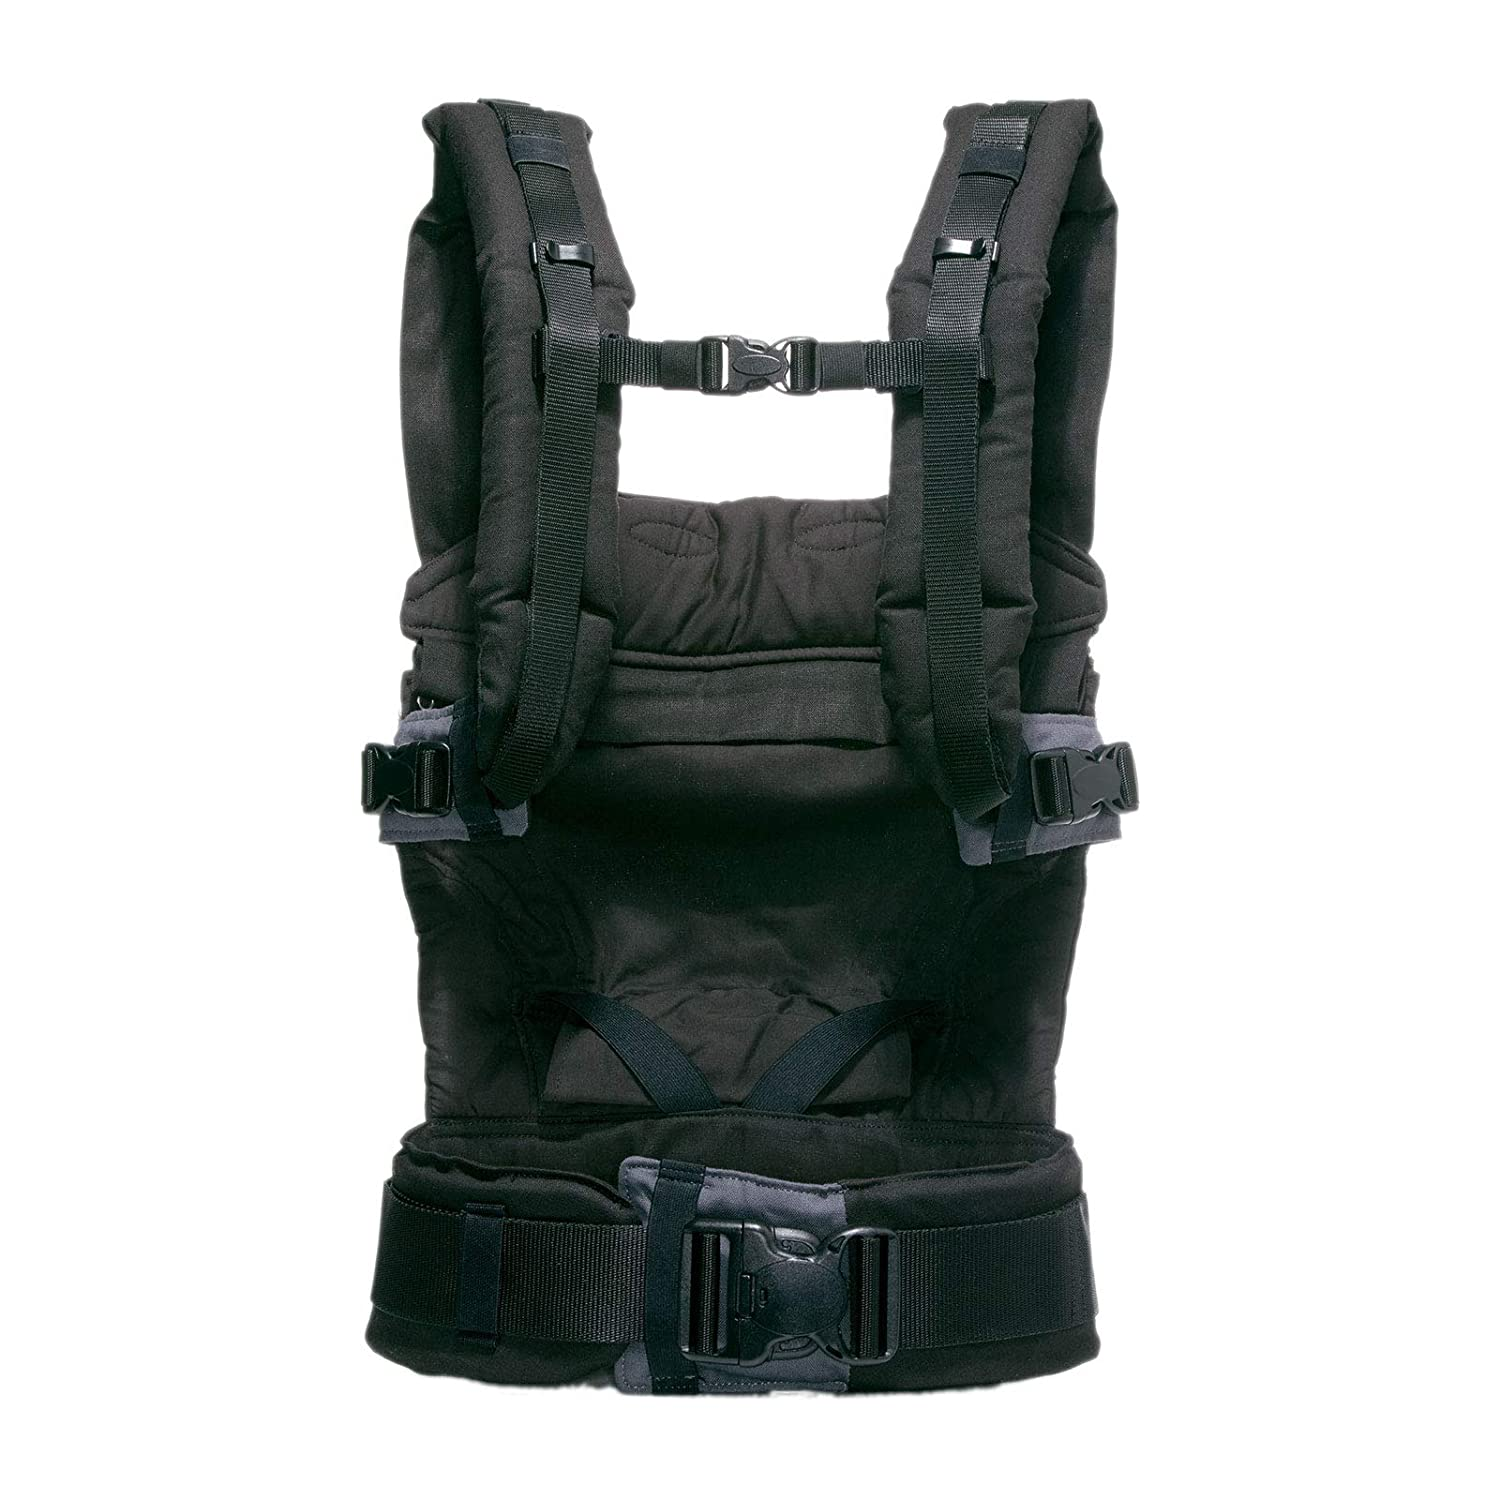 Manduca Standard Edition Carrier (Black)